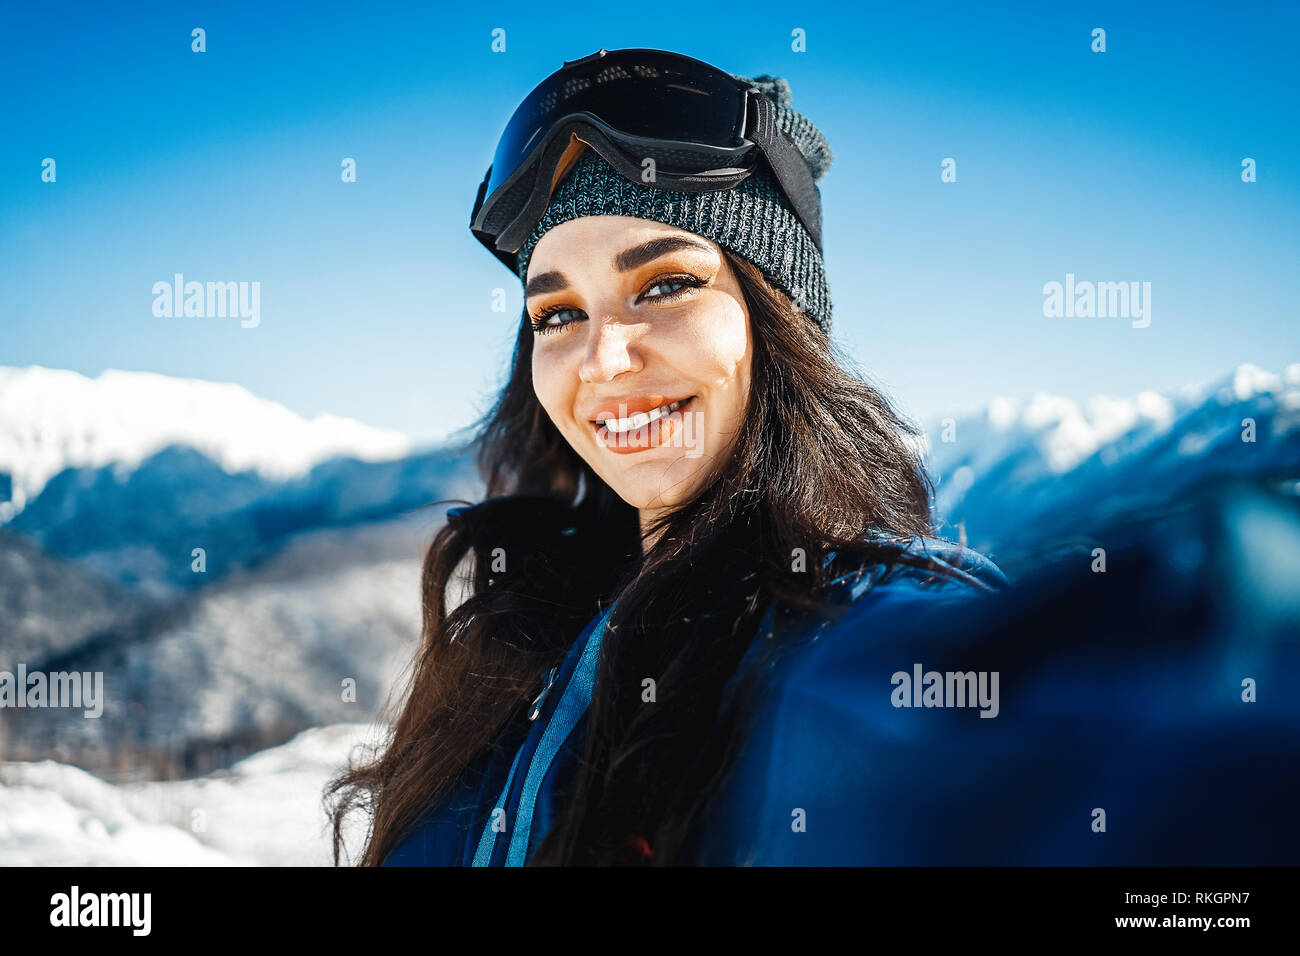 Attractive snowboard girl smiling and making selfie on mountain background.  - Stock Image 129774694